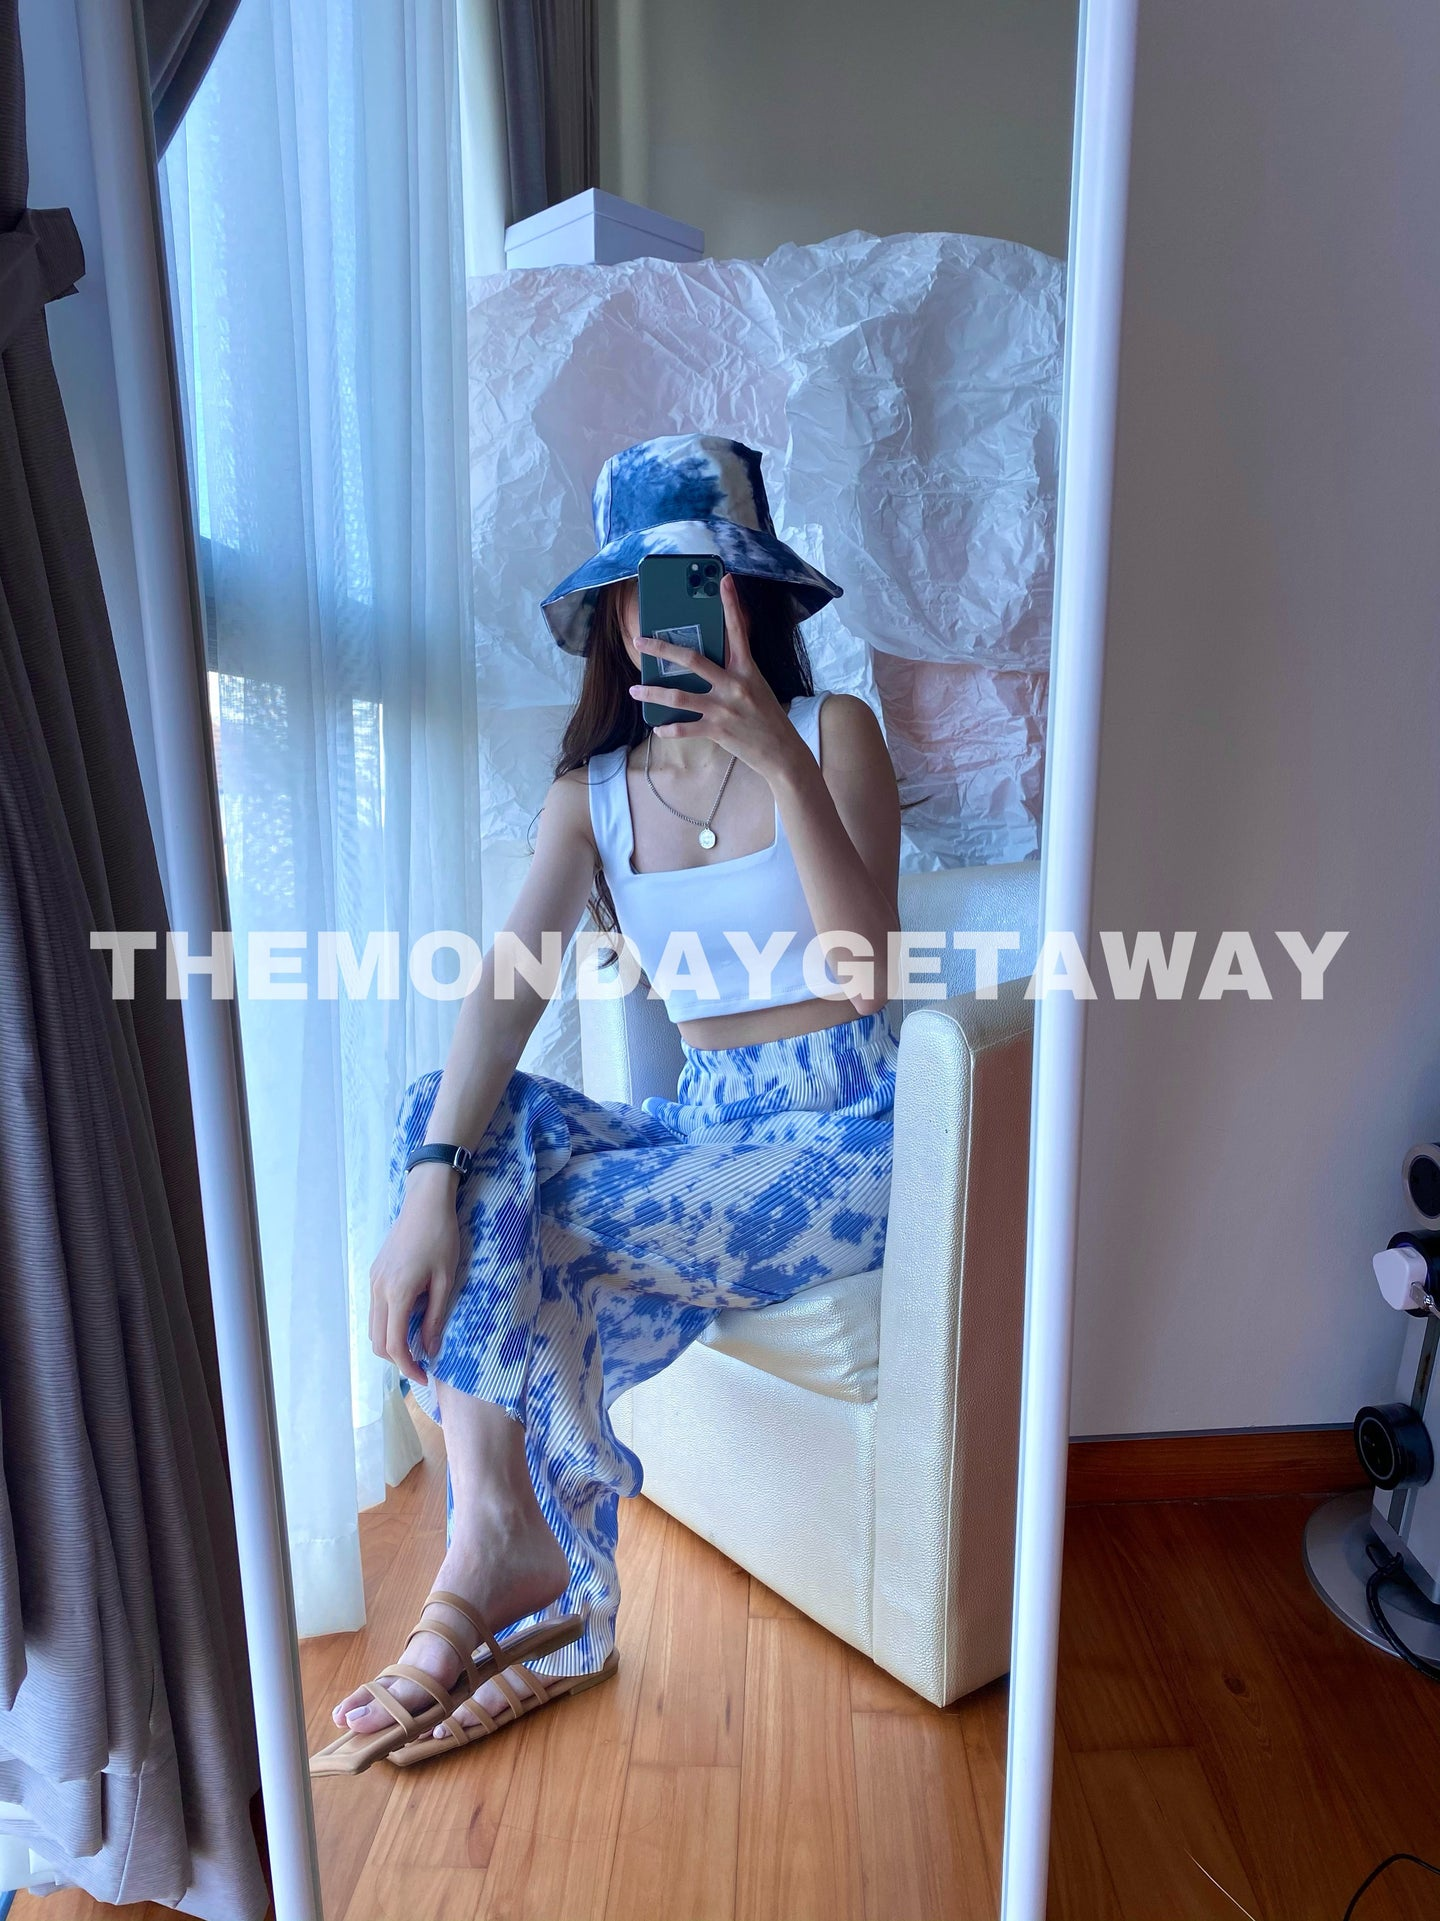 Tiedye Bucket Hat - themondaygetaway.